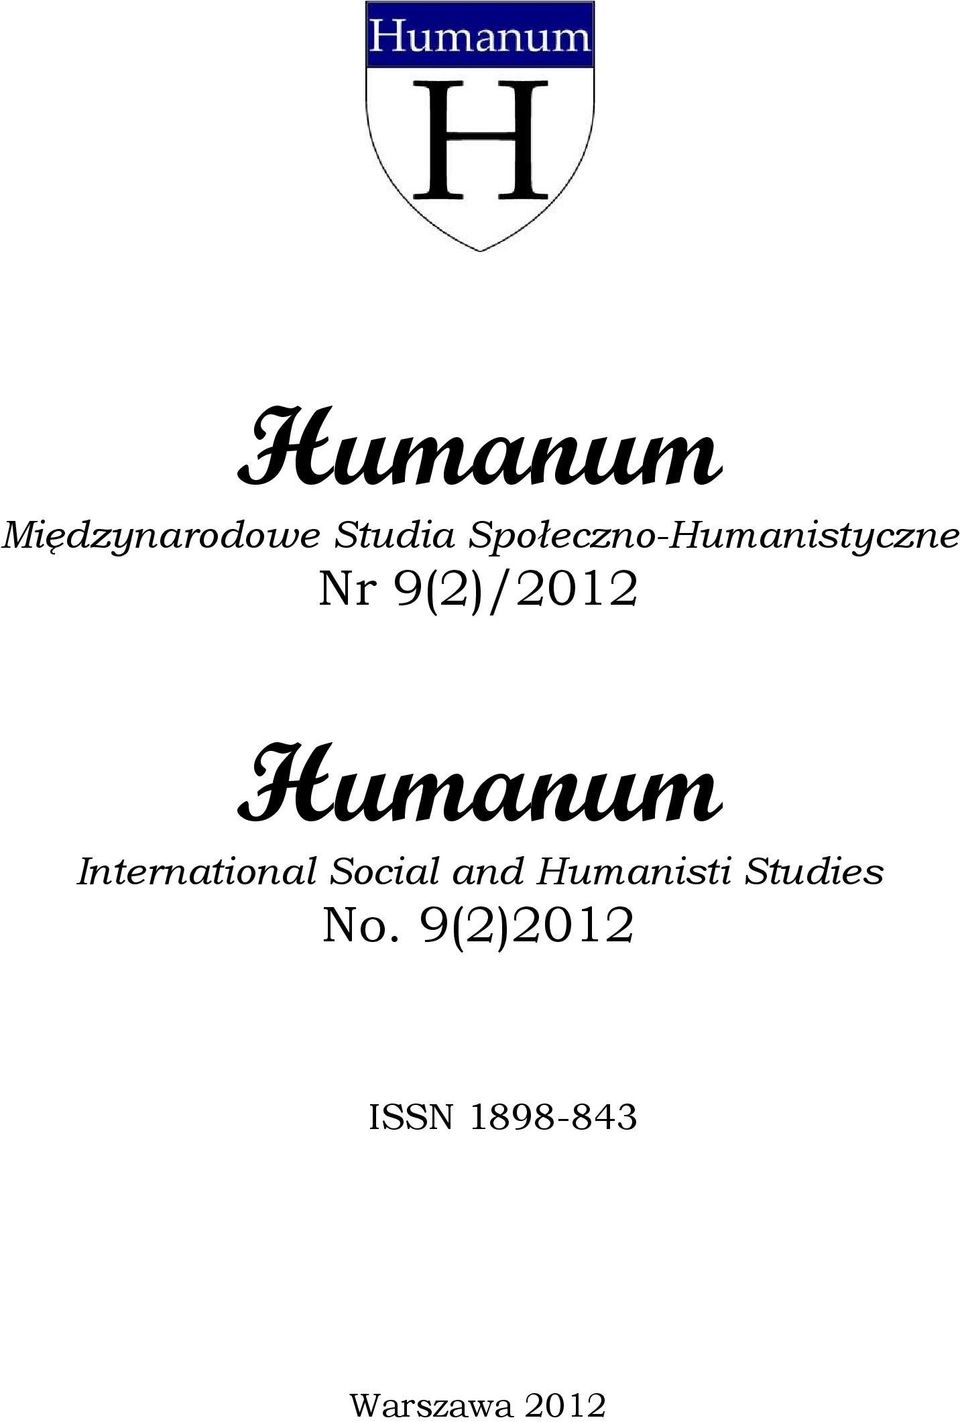 Humanum International Social and